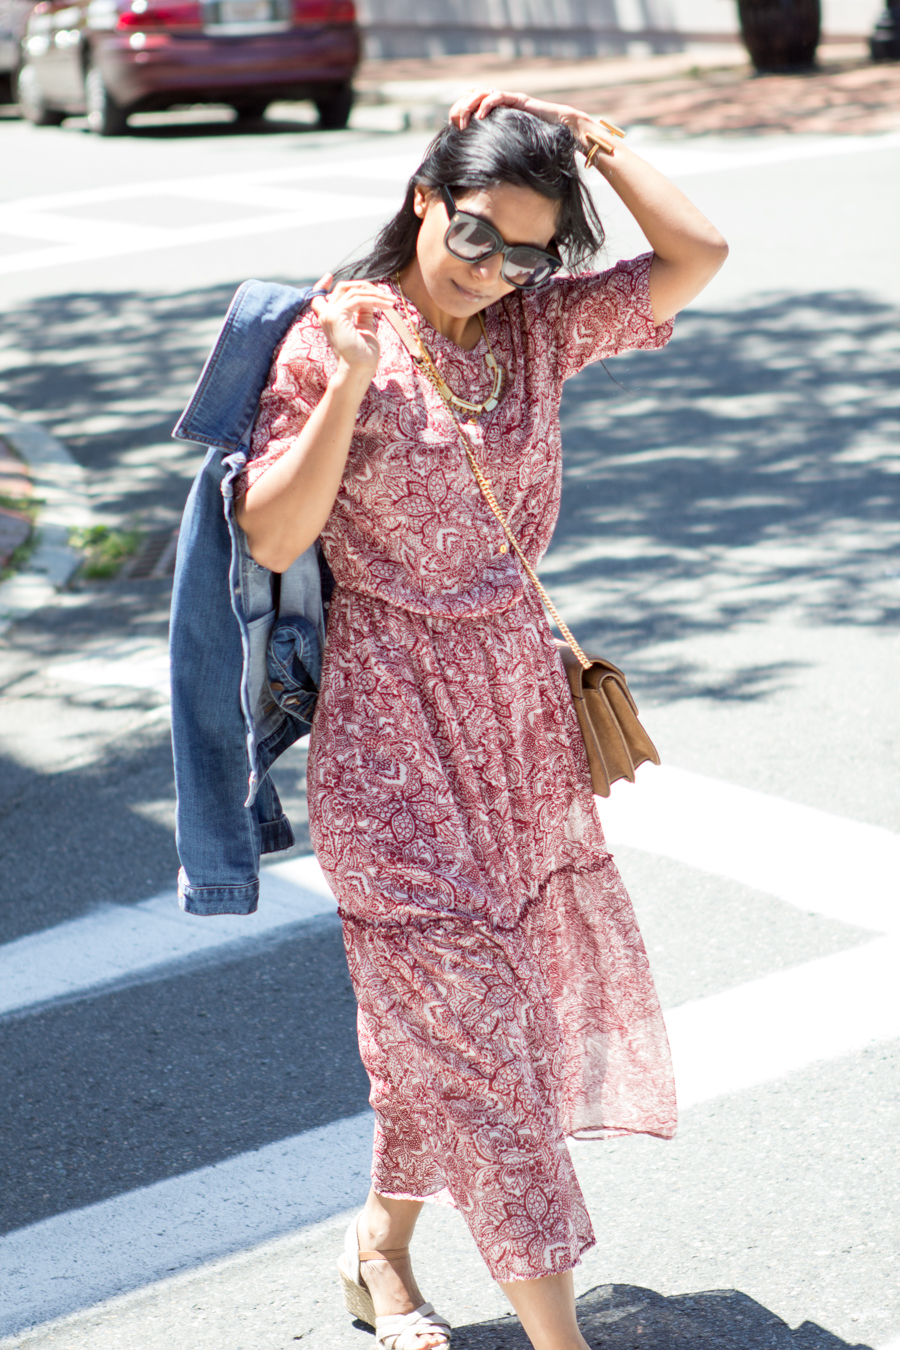 target, who what wear, summer dress, summer style, casual dress, espadrilles, lucky brand, madewell, relaxed style, petite fashion